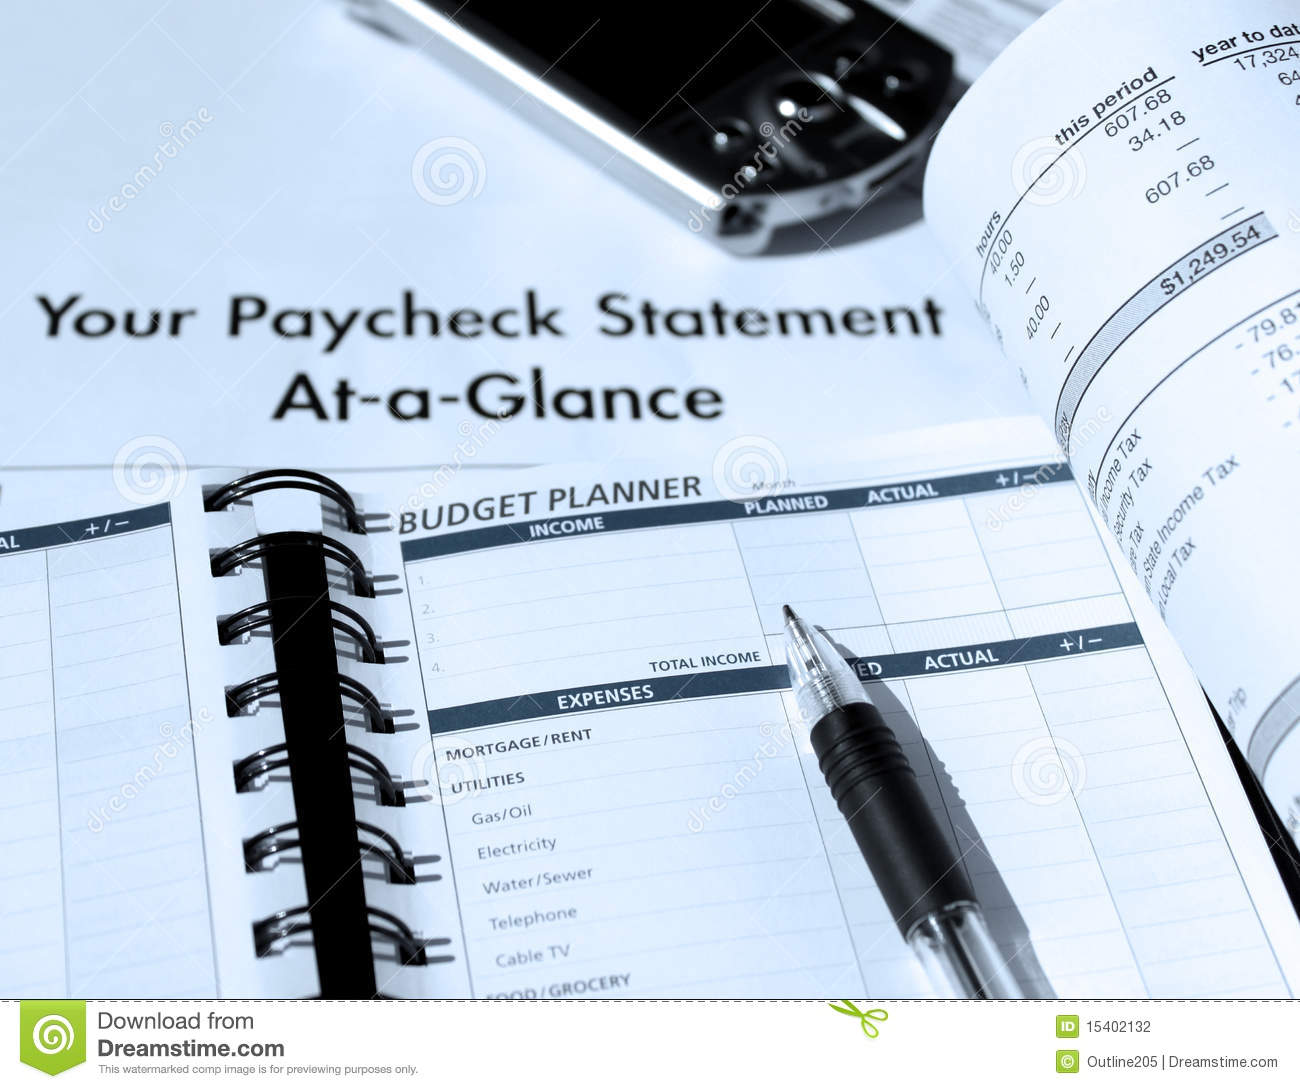 personal expense budget planning 15402132jpg